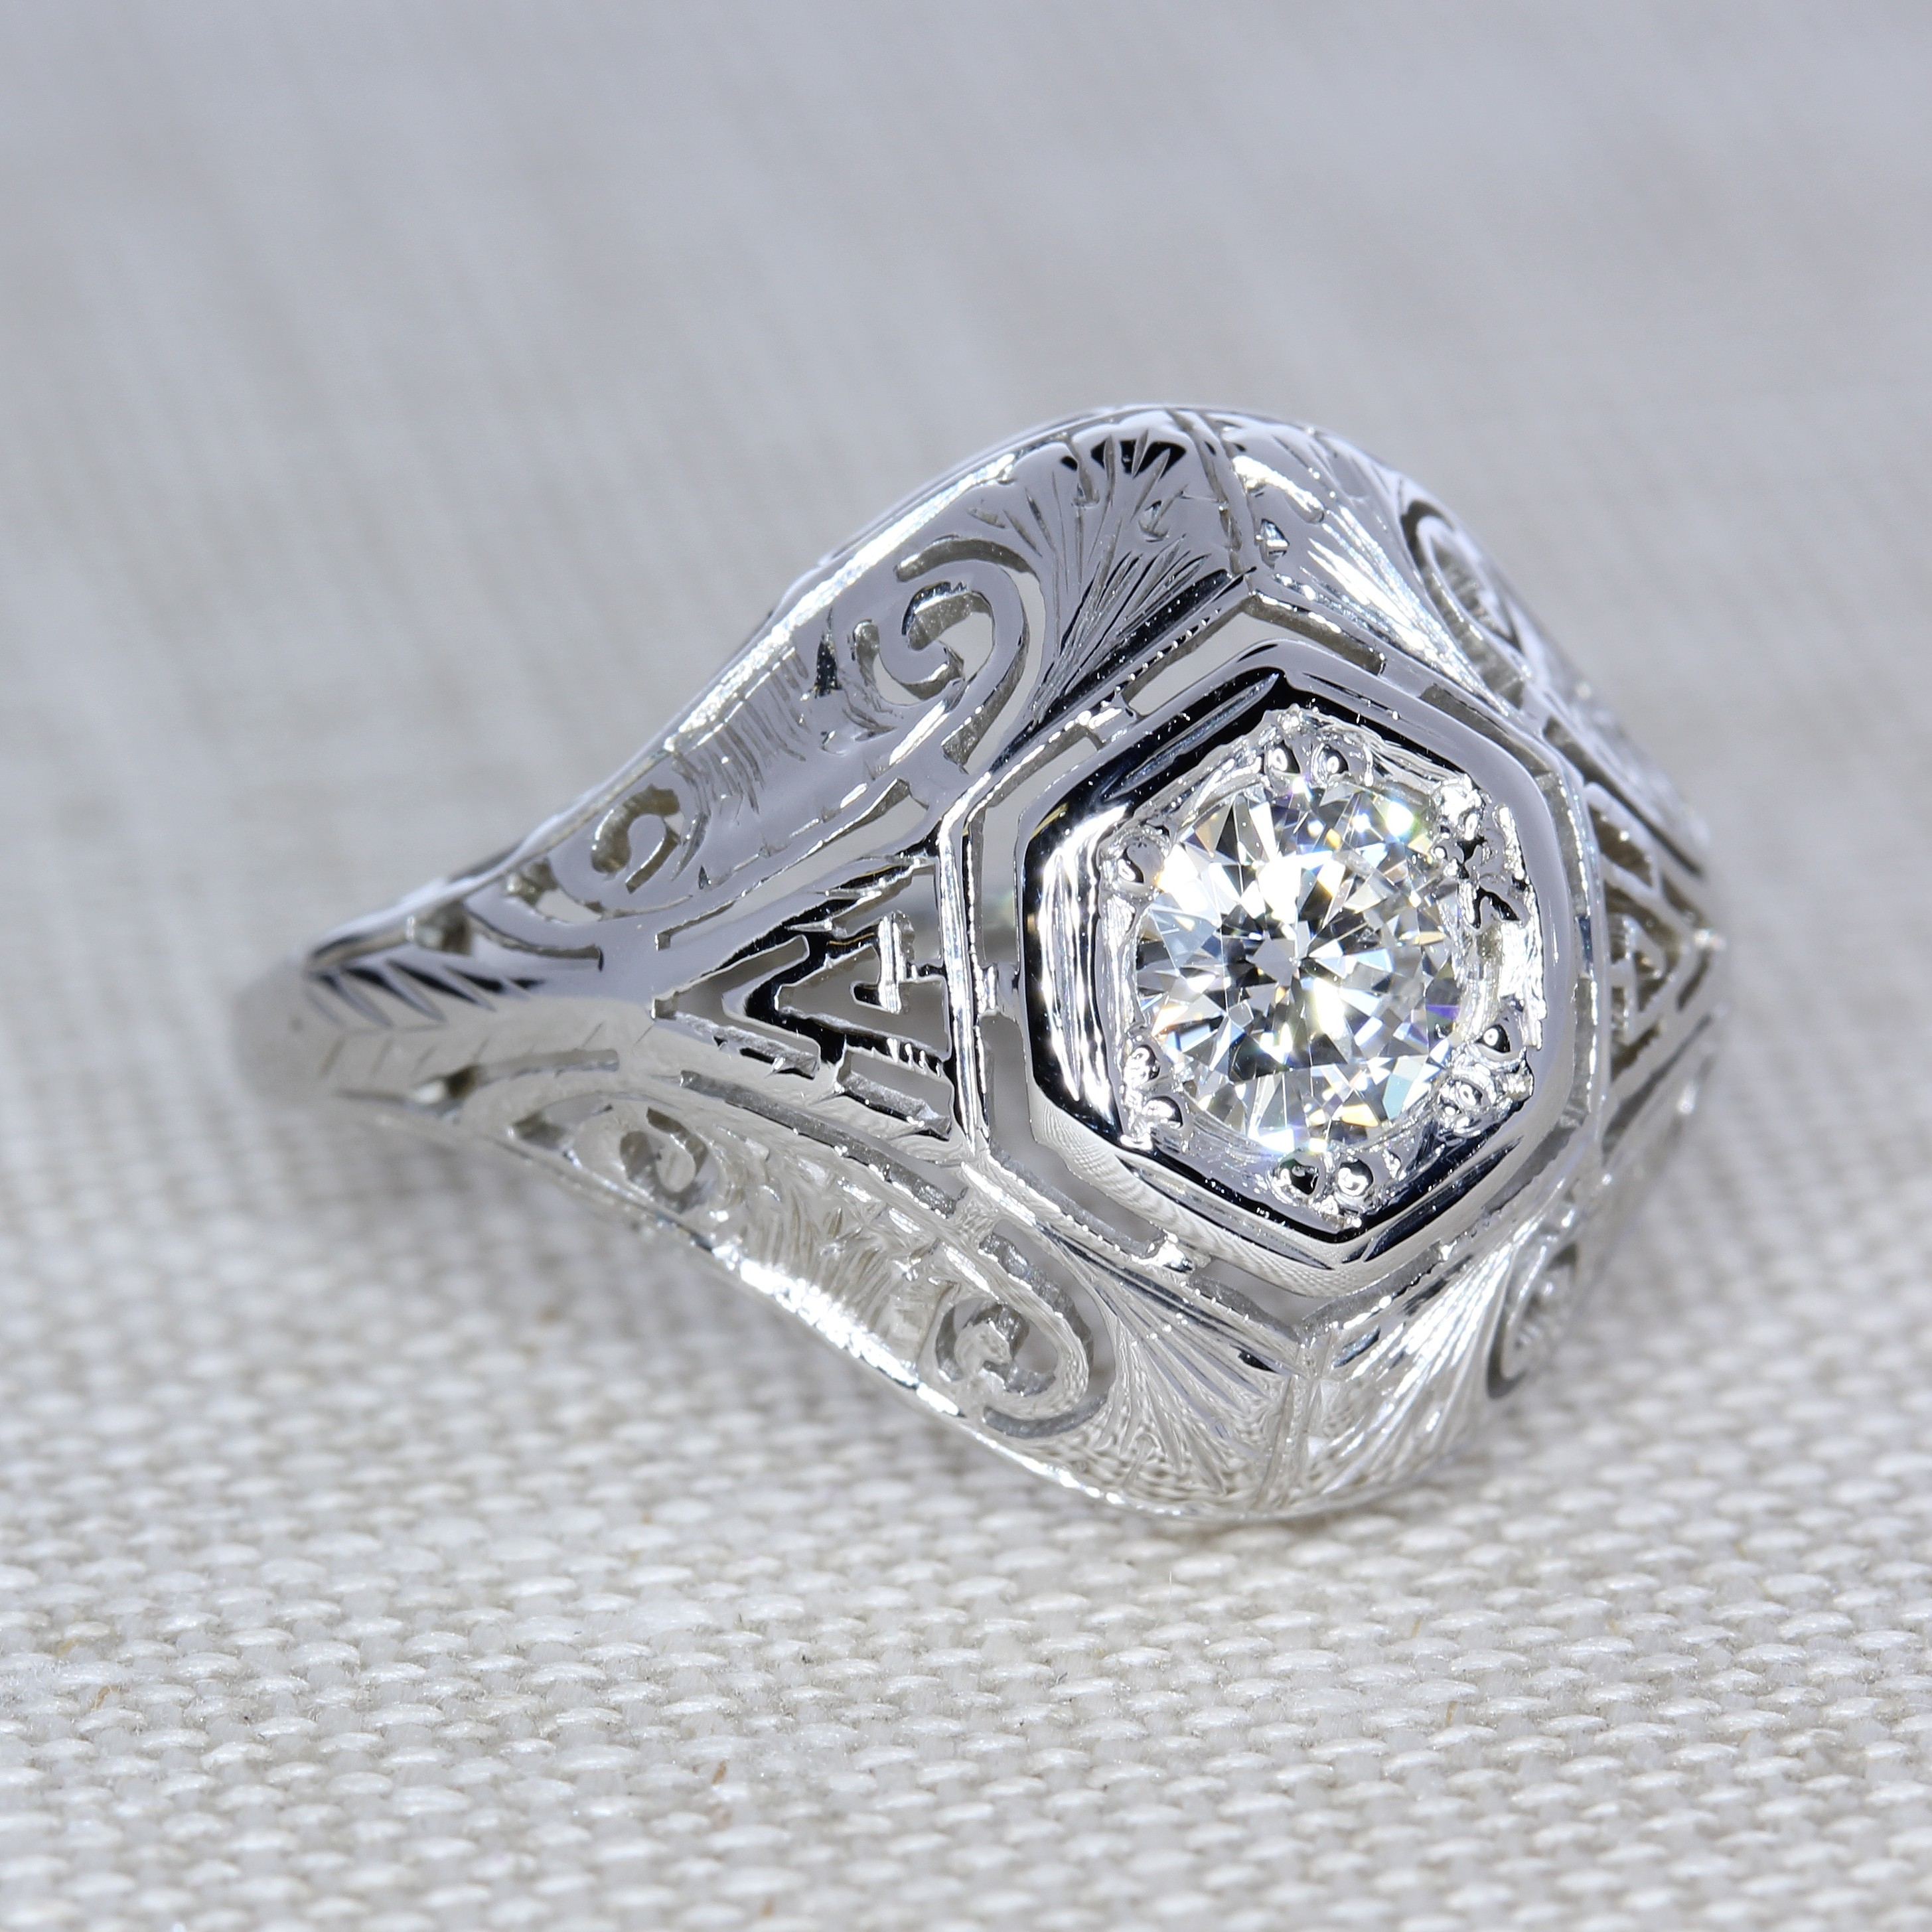 Vintage 18 karat White Gold Filigree Antique Style ring